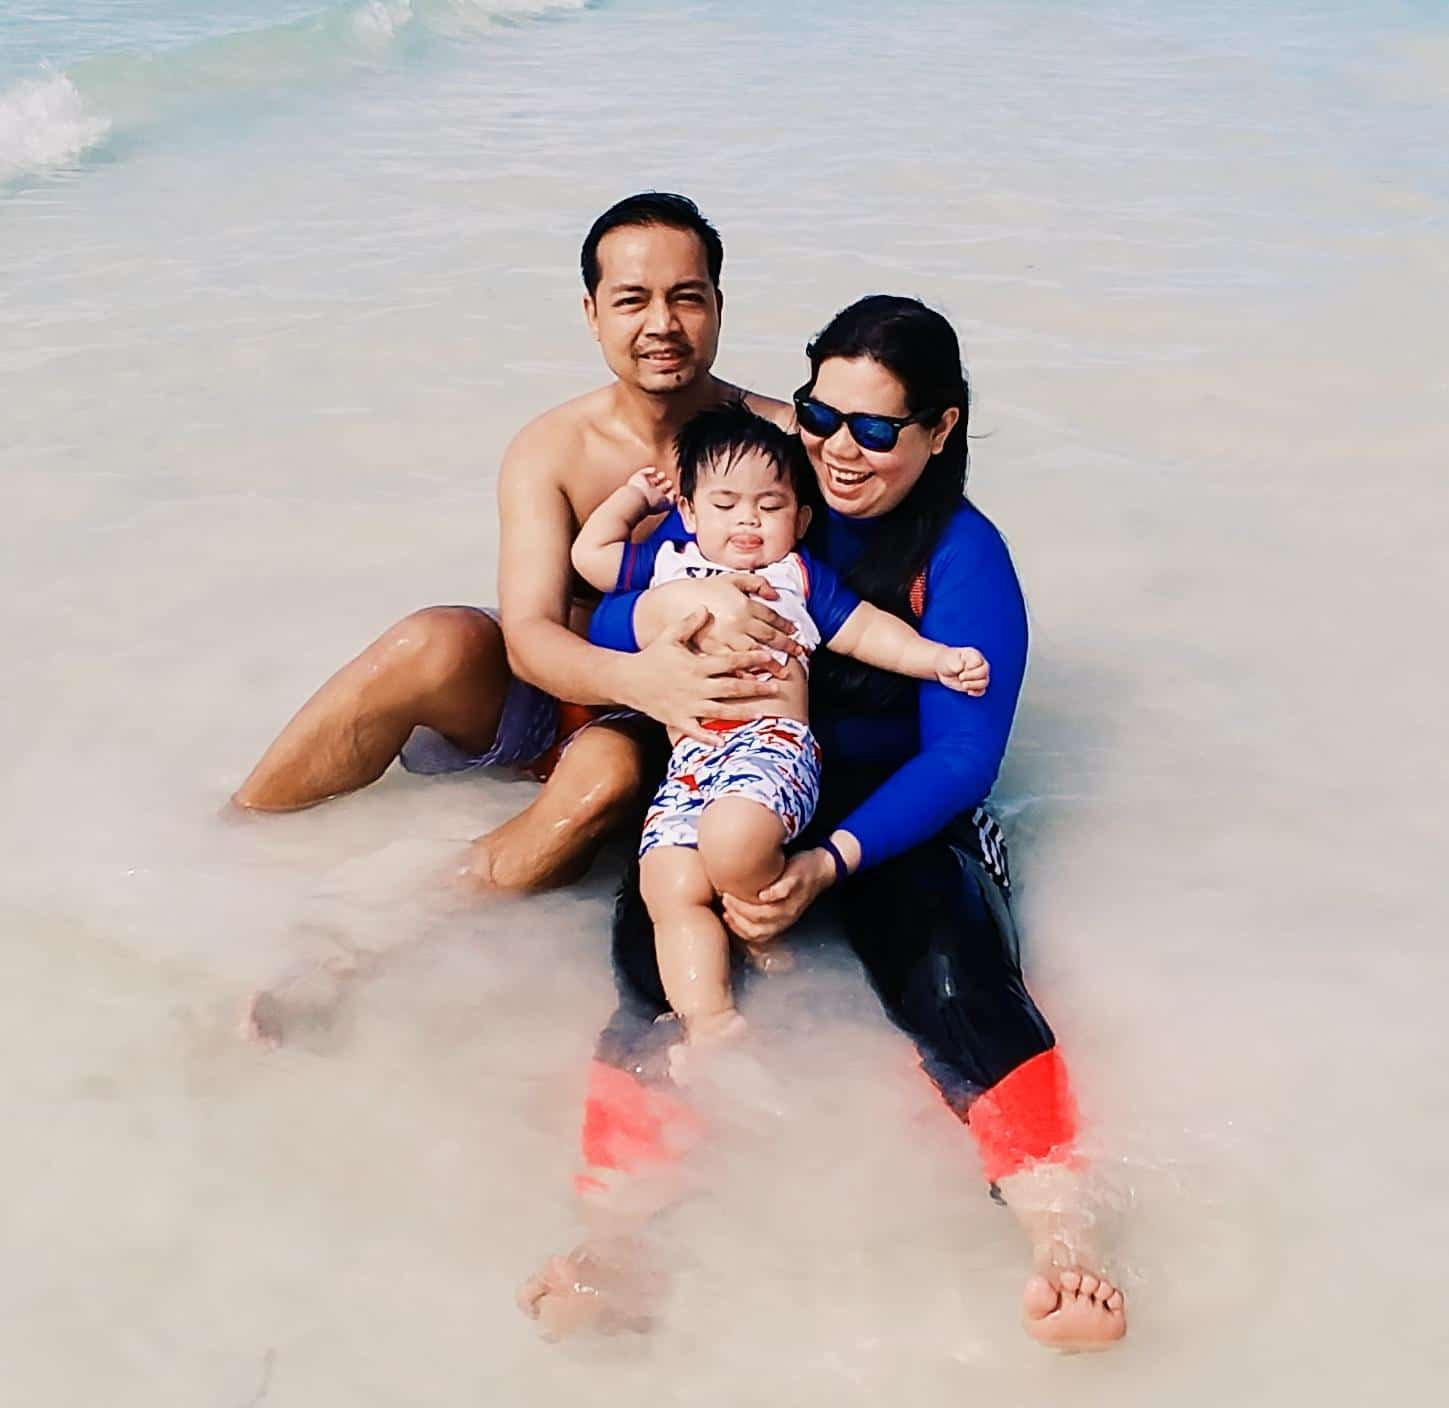 Swimming with a baby on the beach